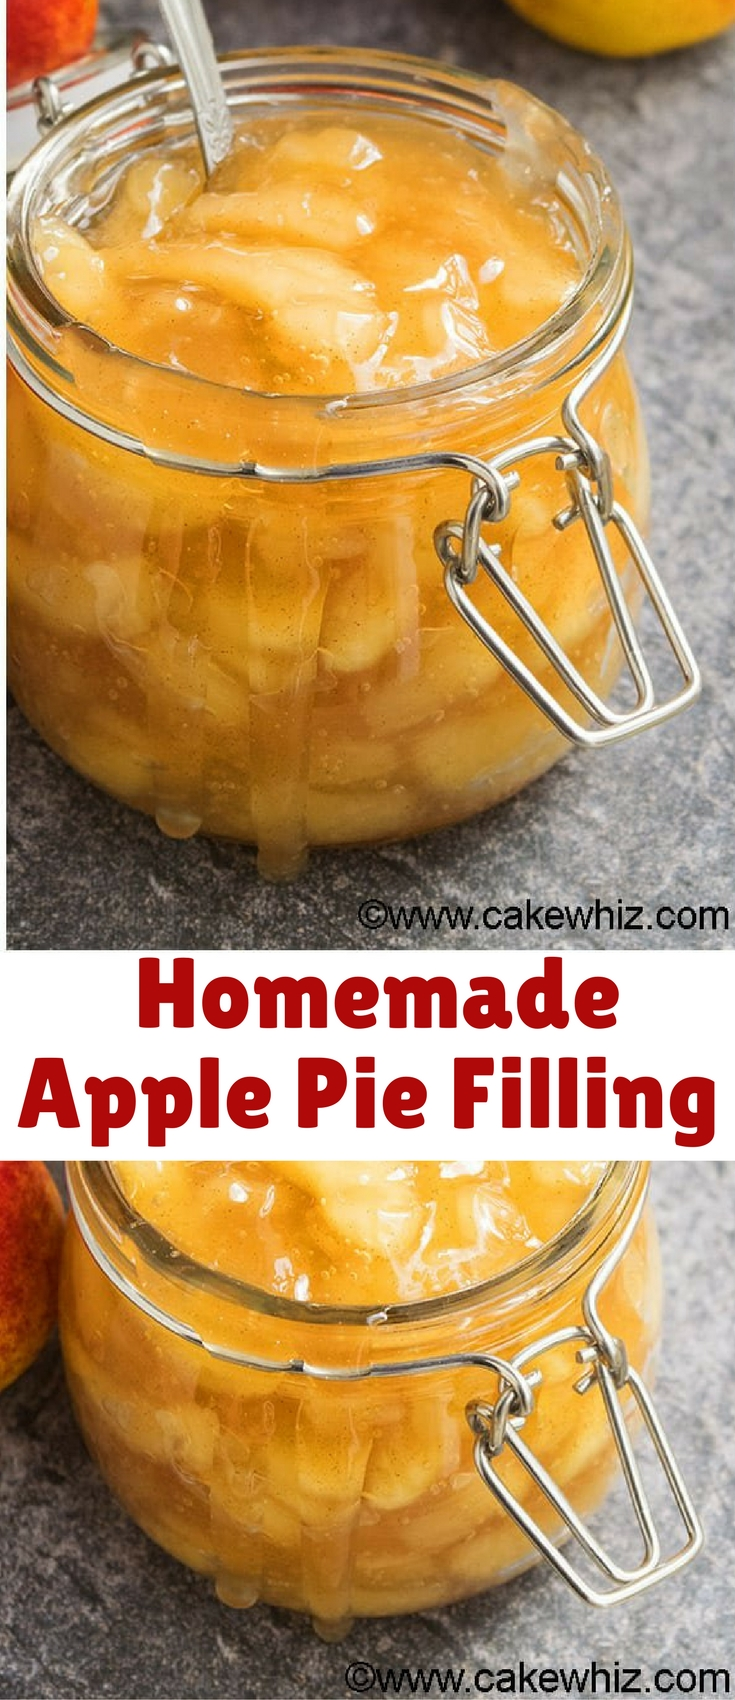 Learn how to make quick and easy homemade apple pie filling from scratch on the stovetop. Made with simple ingredients and ready in just 30 minutes.